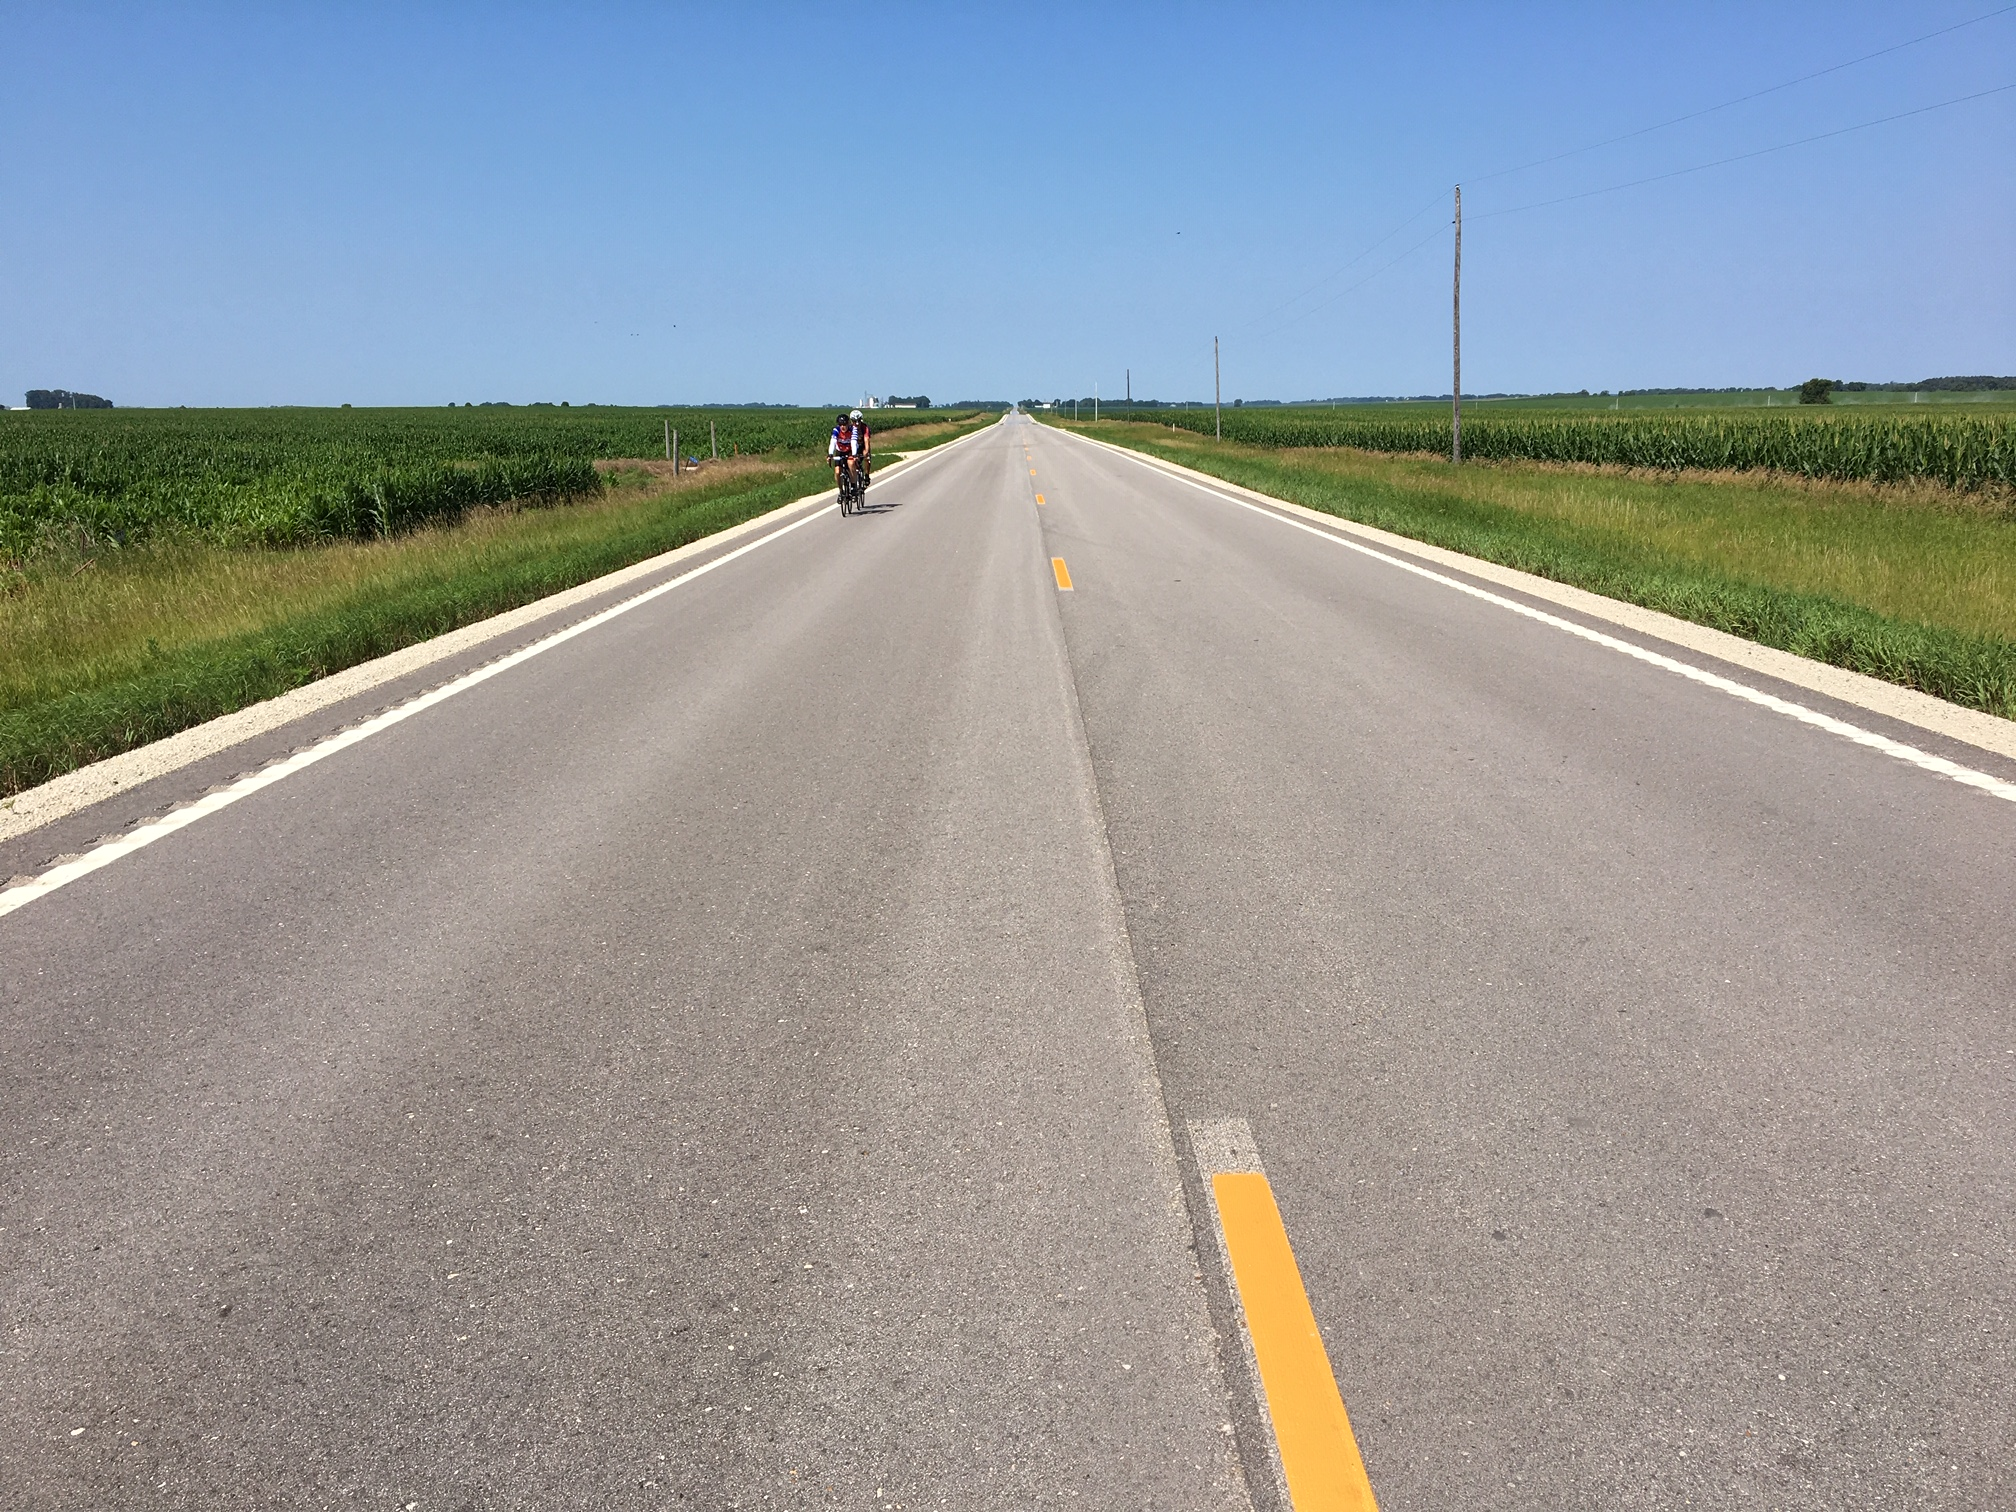 - The roads today were mainly flat and lined on both sides with corn or soybeans. The road shown here is not a ga-dunk road.